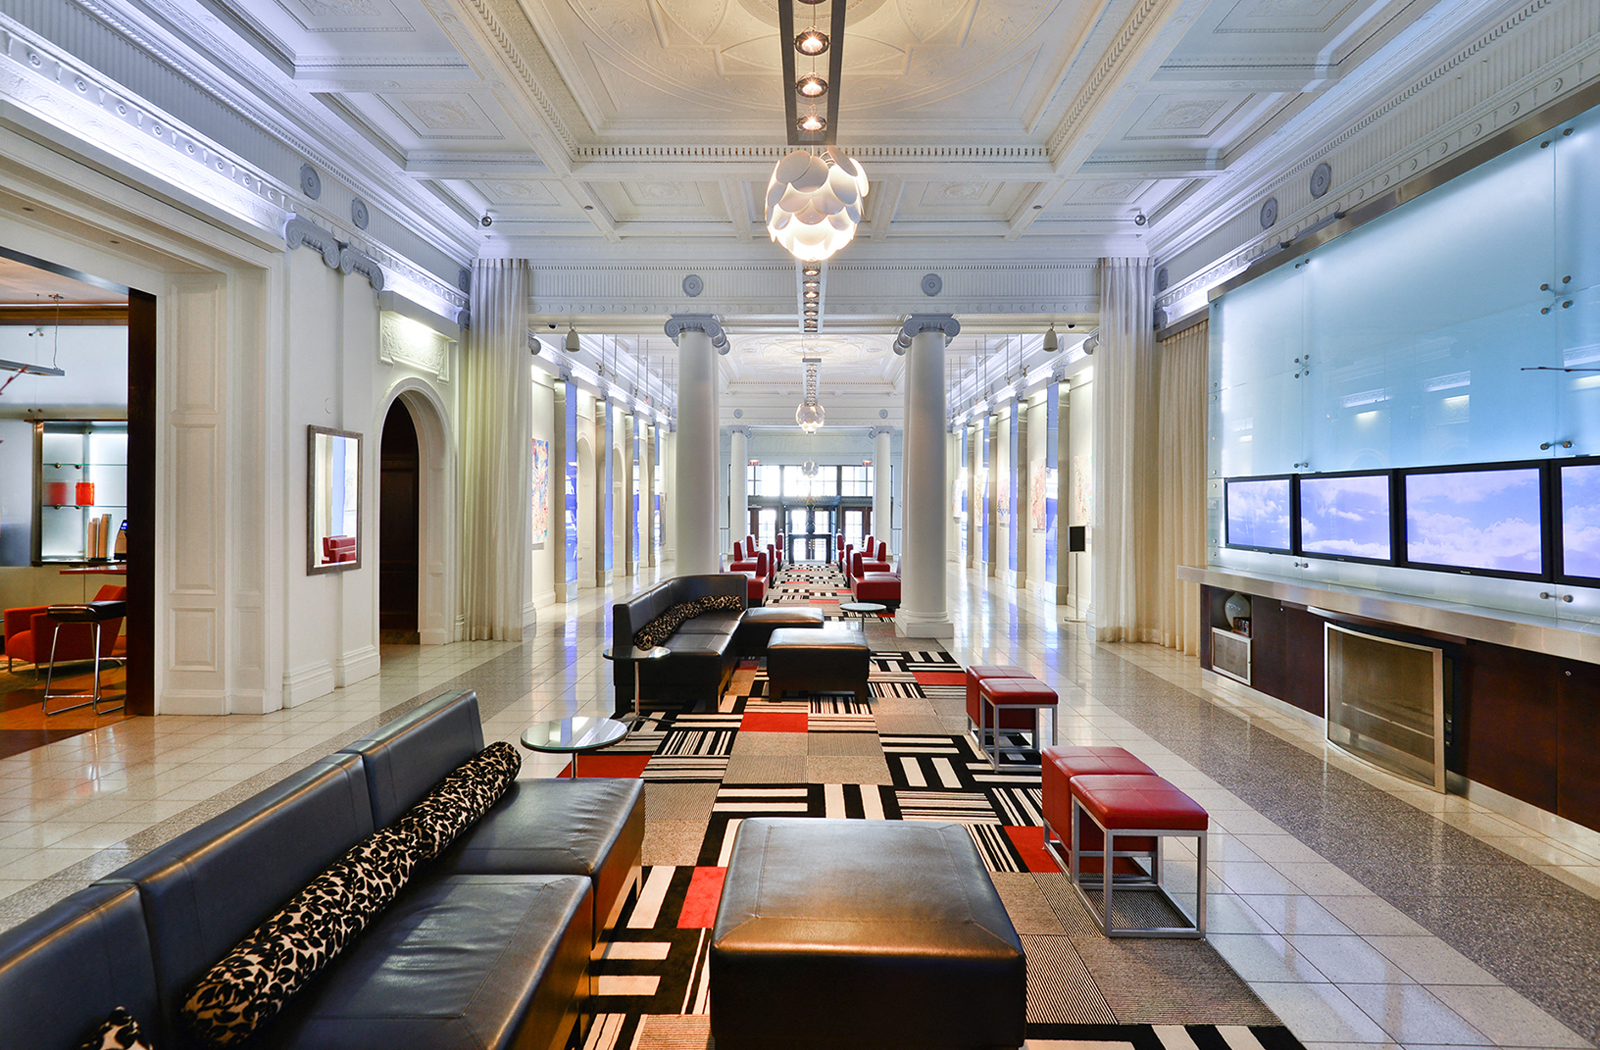 Lobby At The Belmont By Reside Apartments, Chicago, Illinois